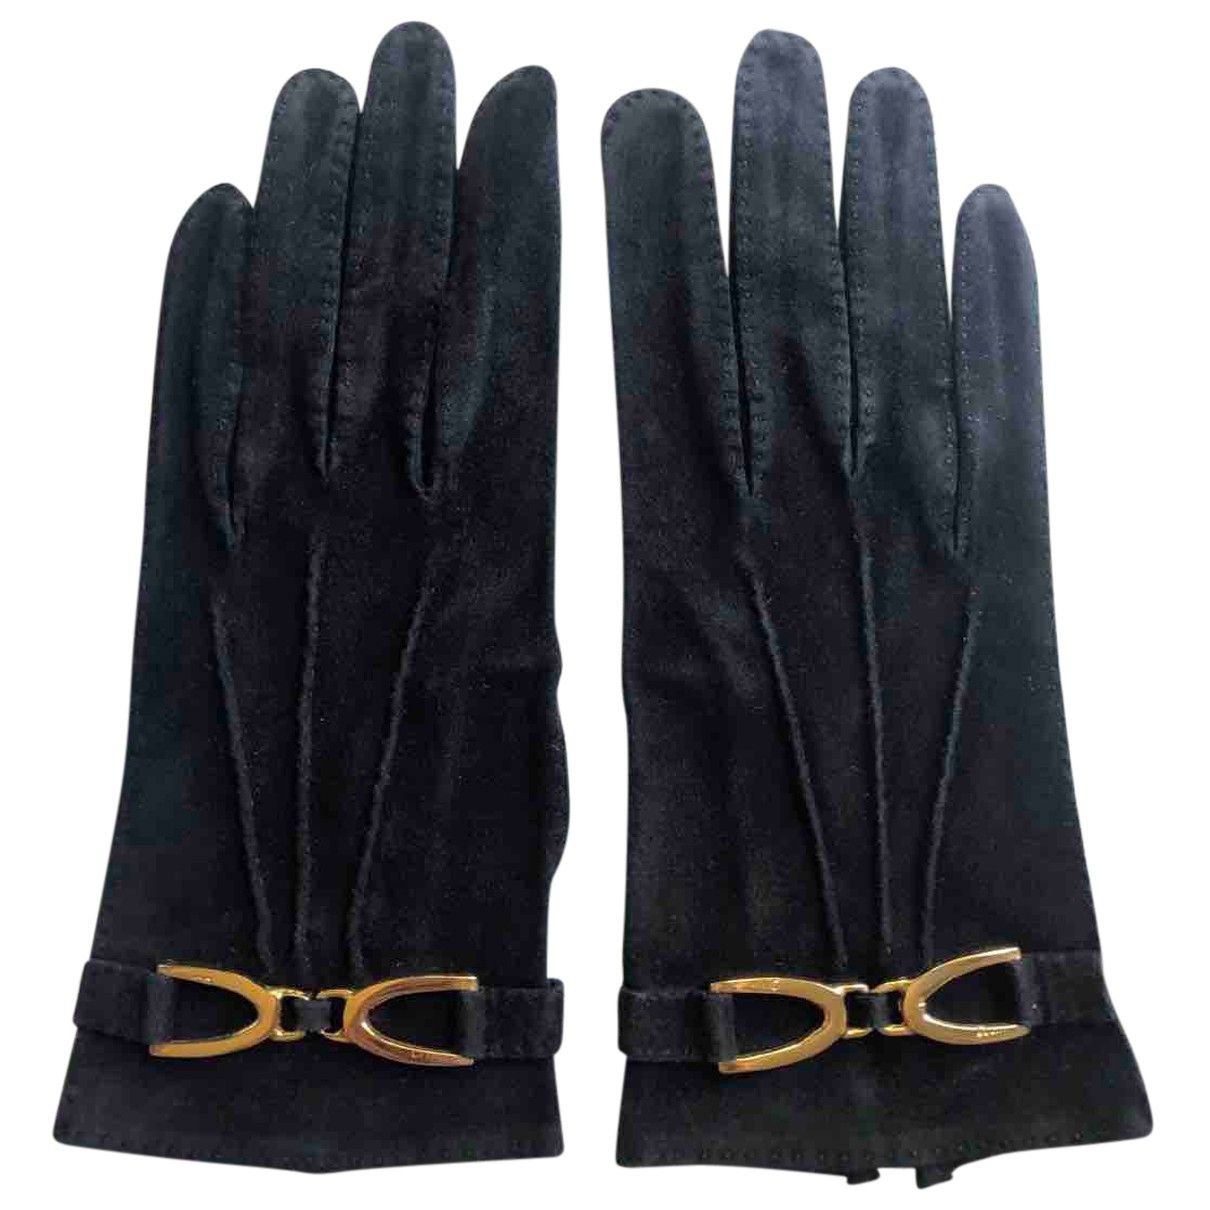 Celine N Black Suede Gloves for Women 6.5 Inches